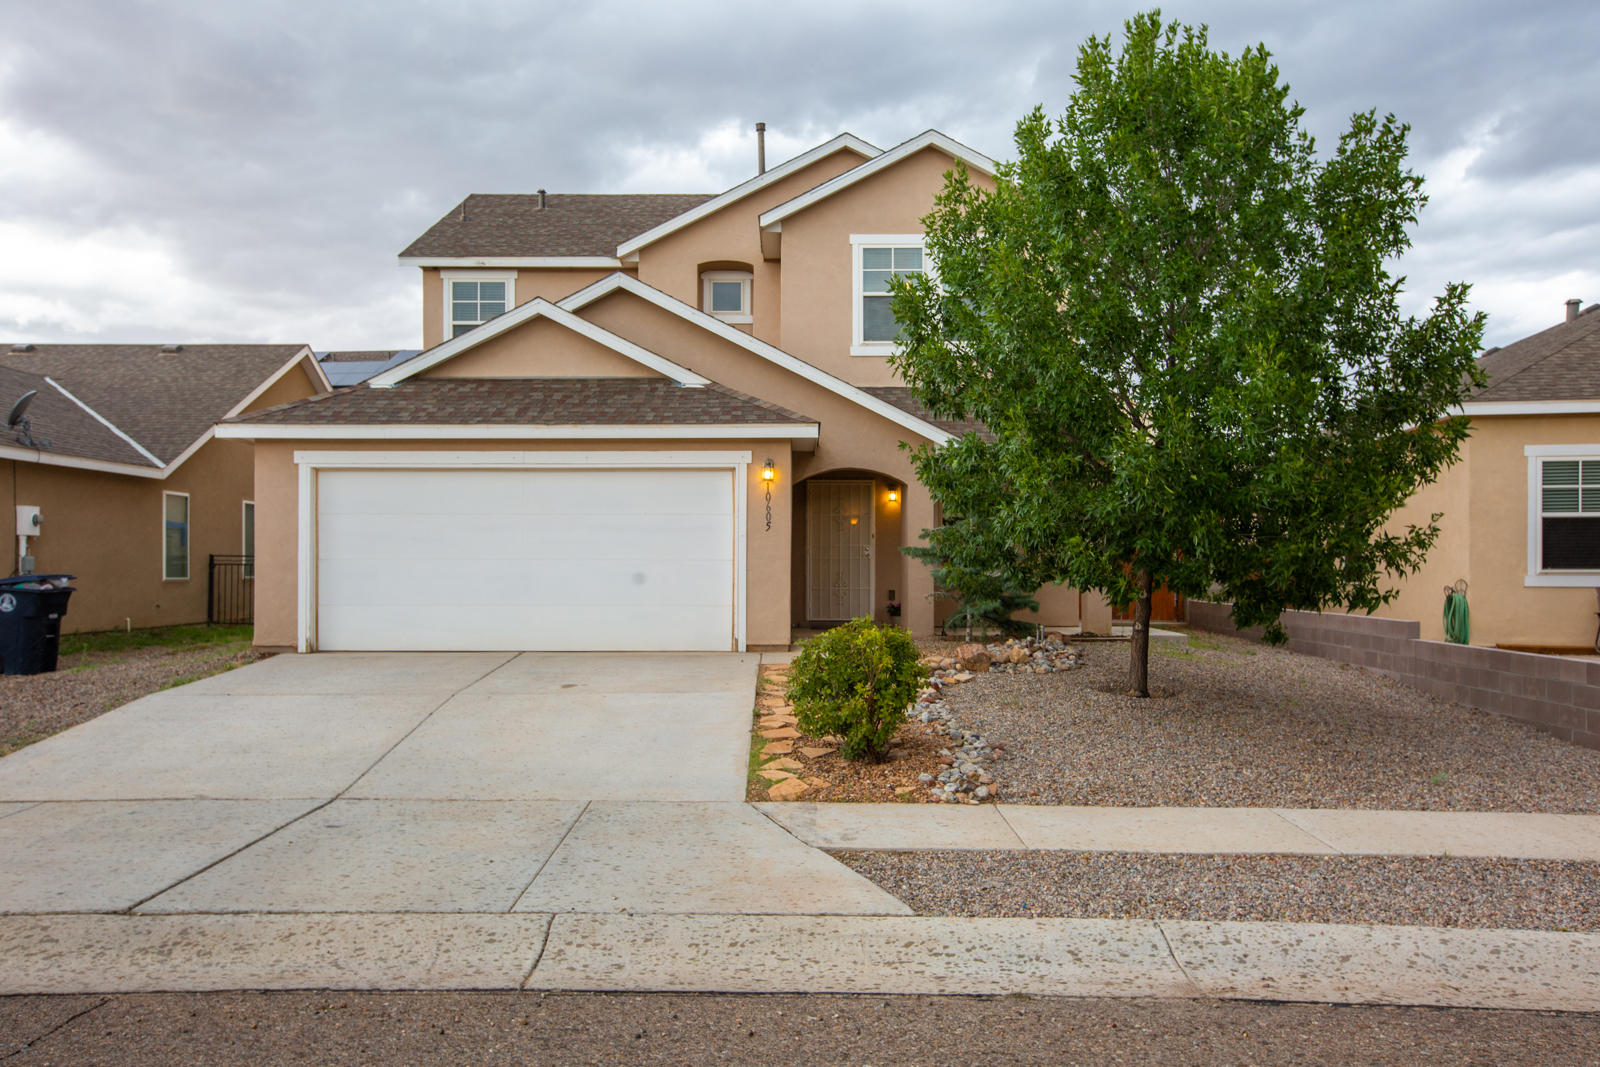 10605 NW Pamplona Street, Northwest Albuquerque and Northwest Heights, New Mexico